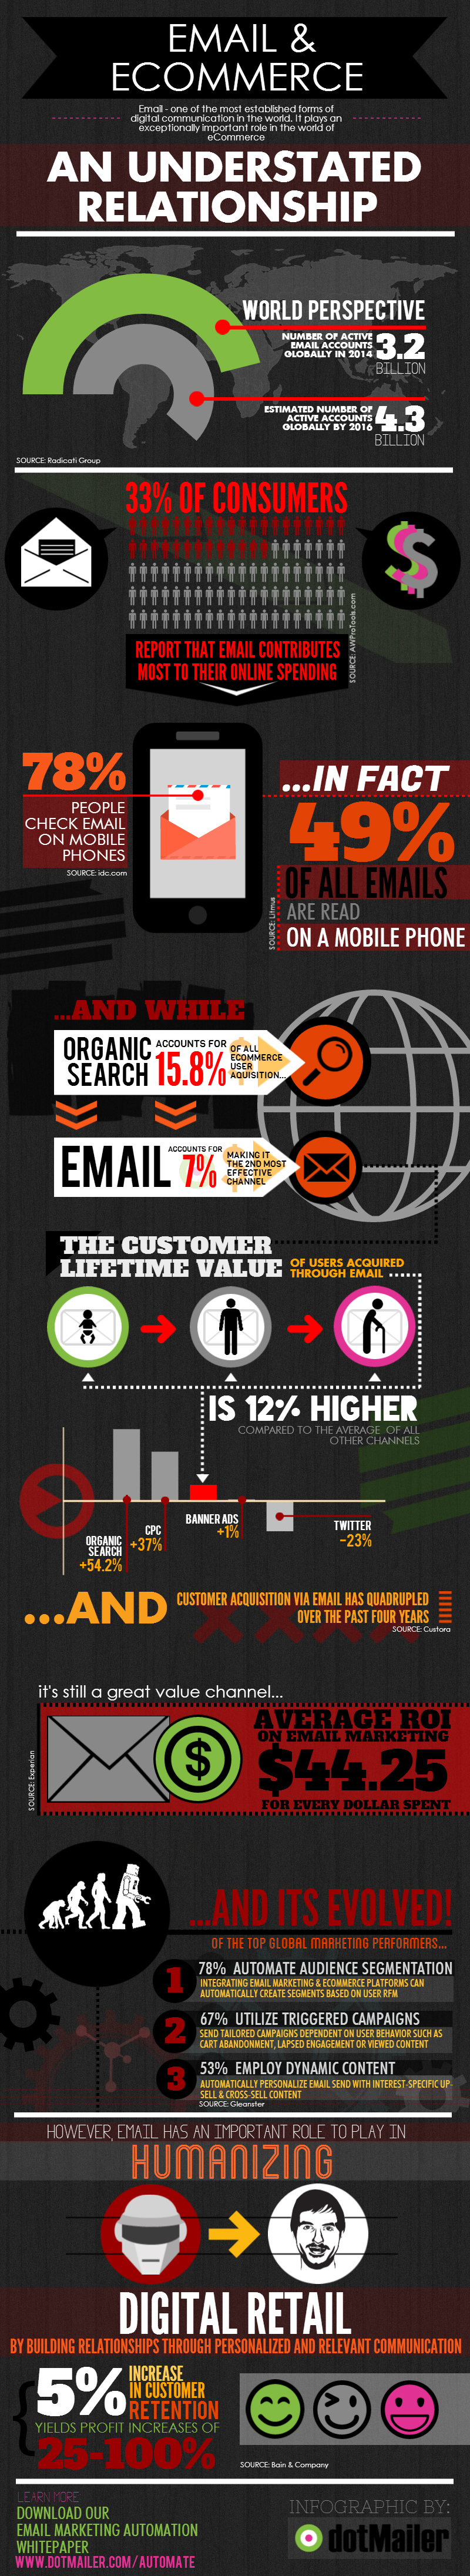 Email & Ecommerce